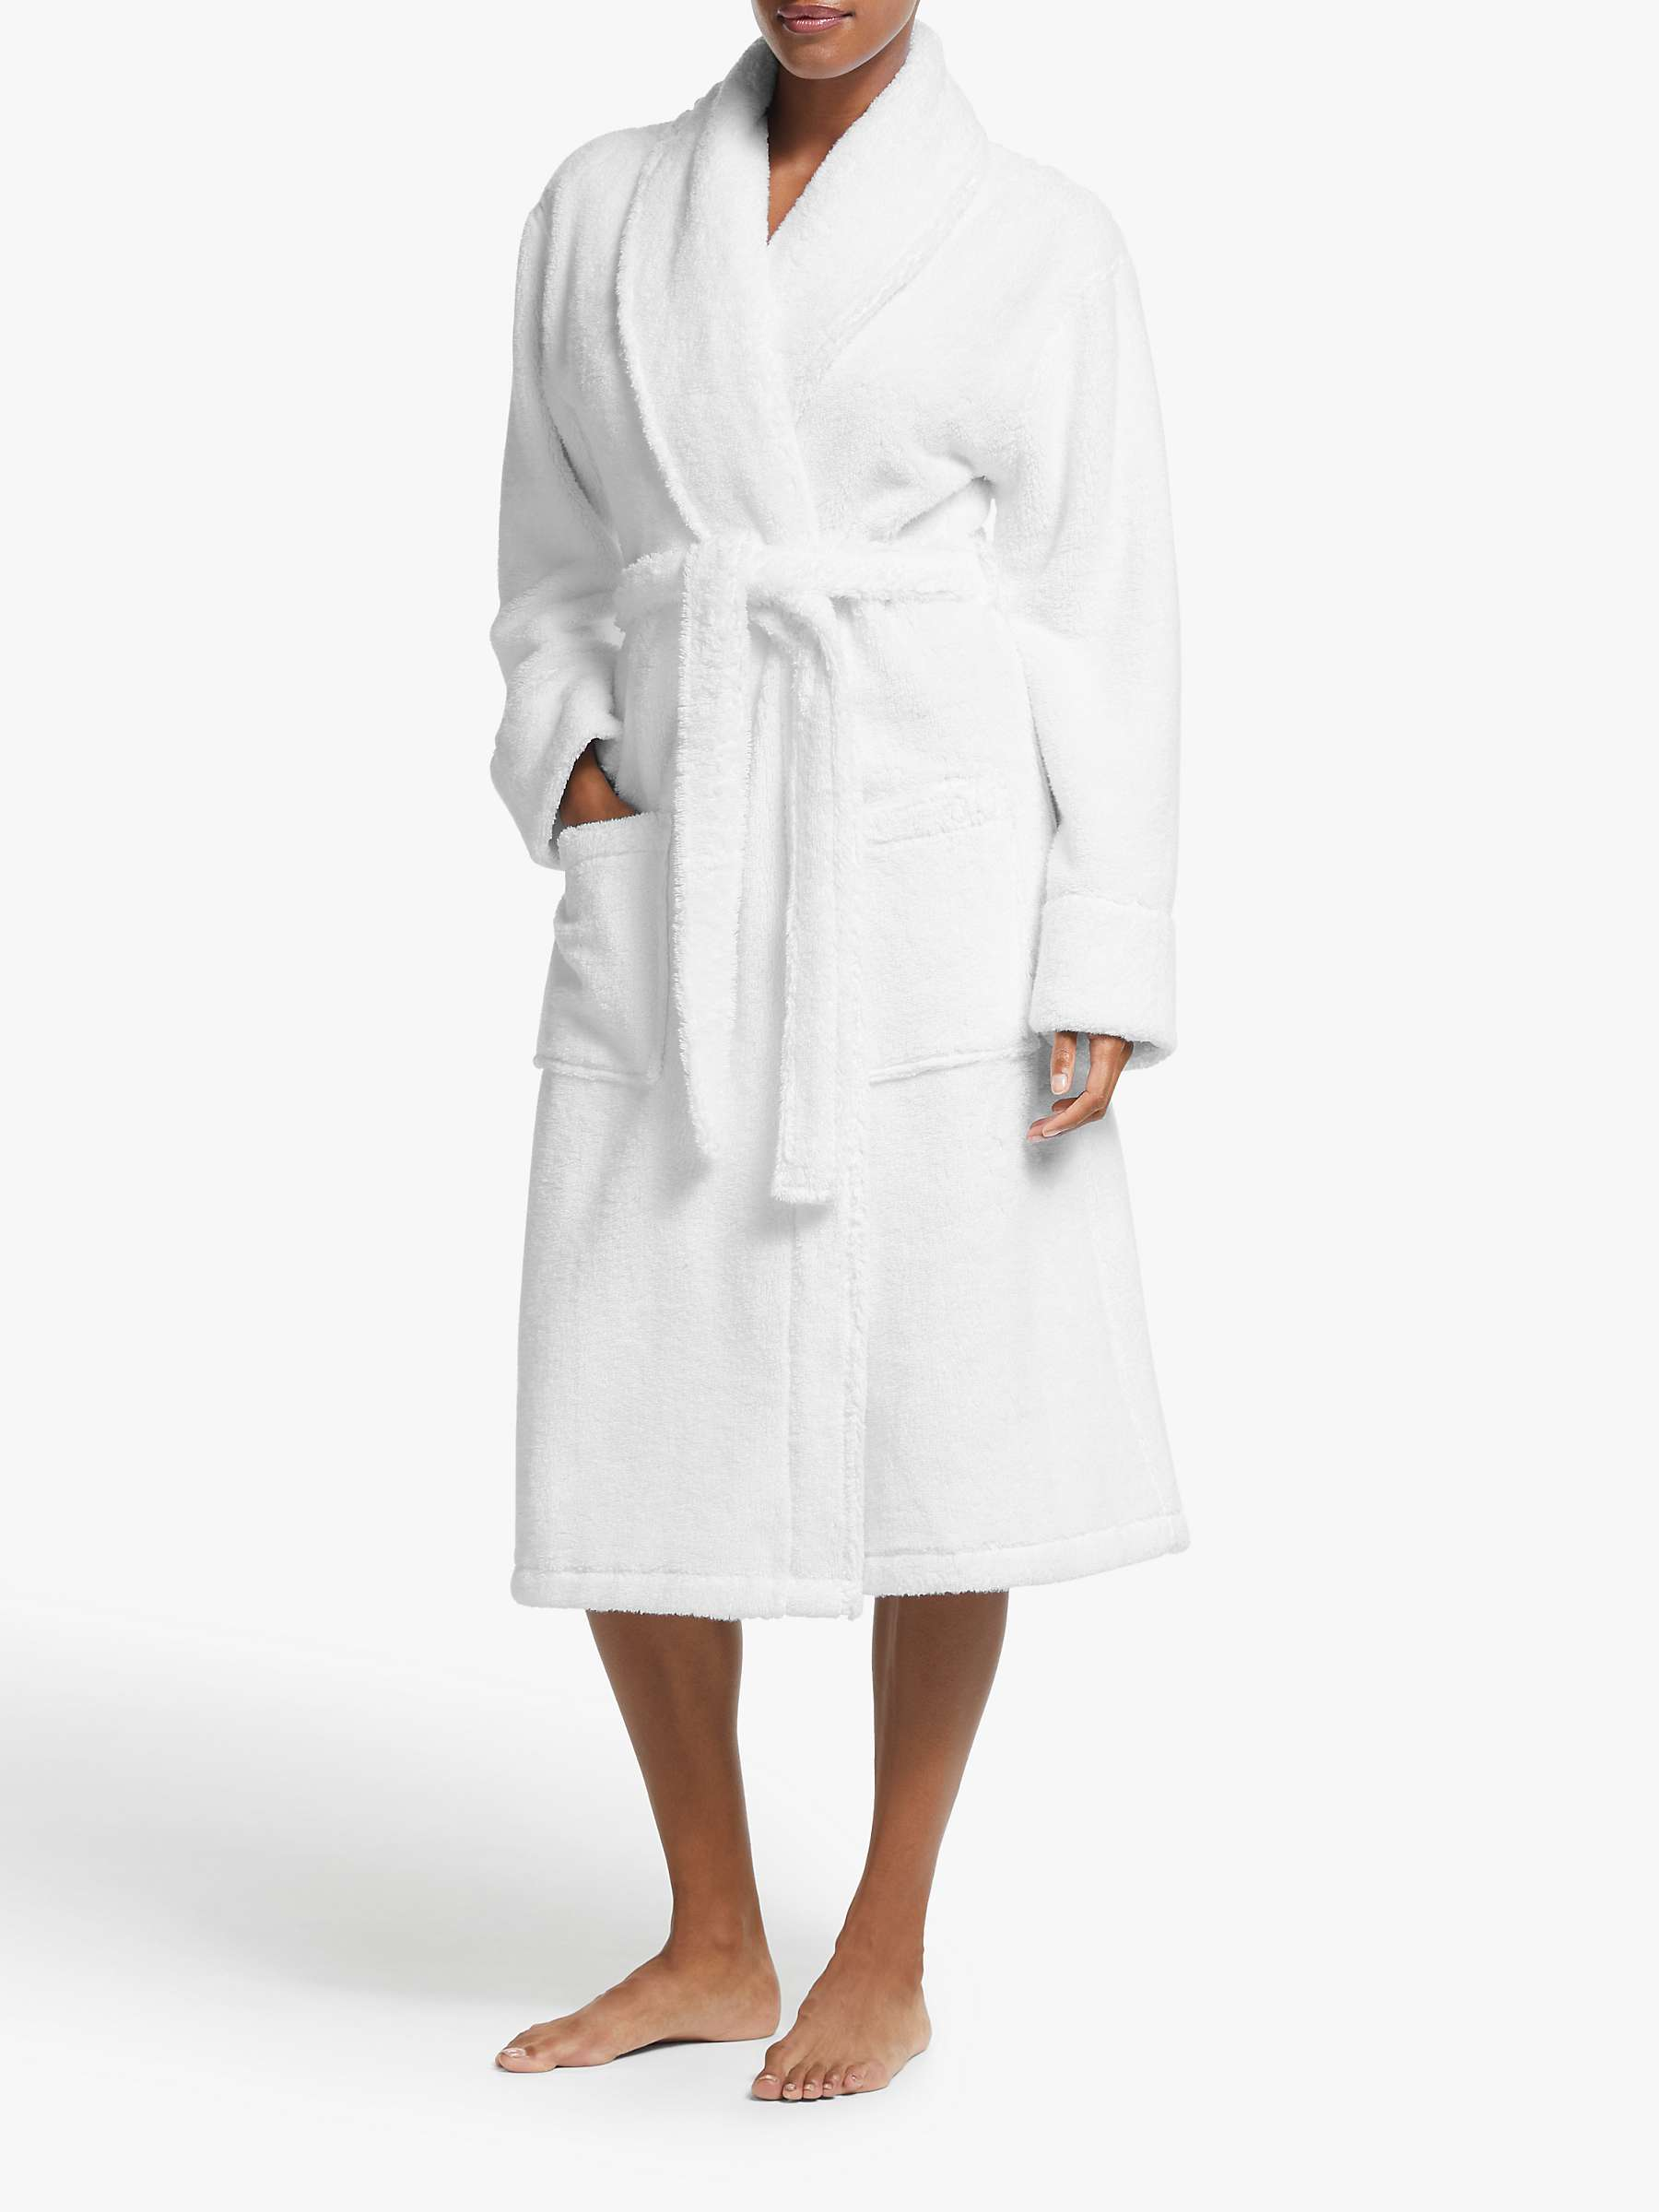 John Lewis & Partners Luxury Towelling Robe, White by John Lewis